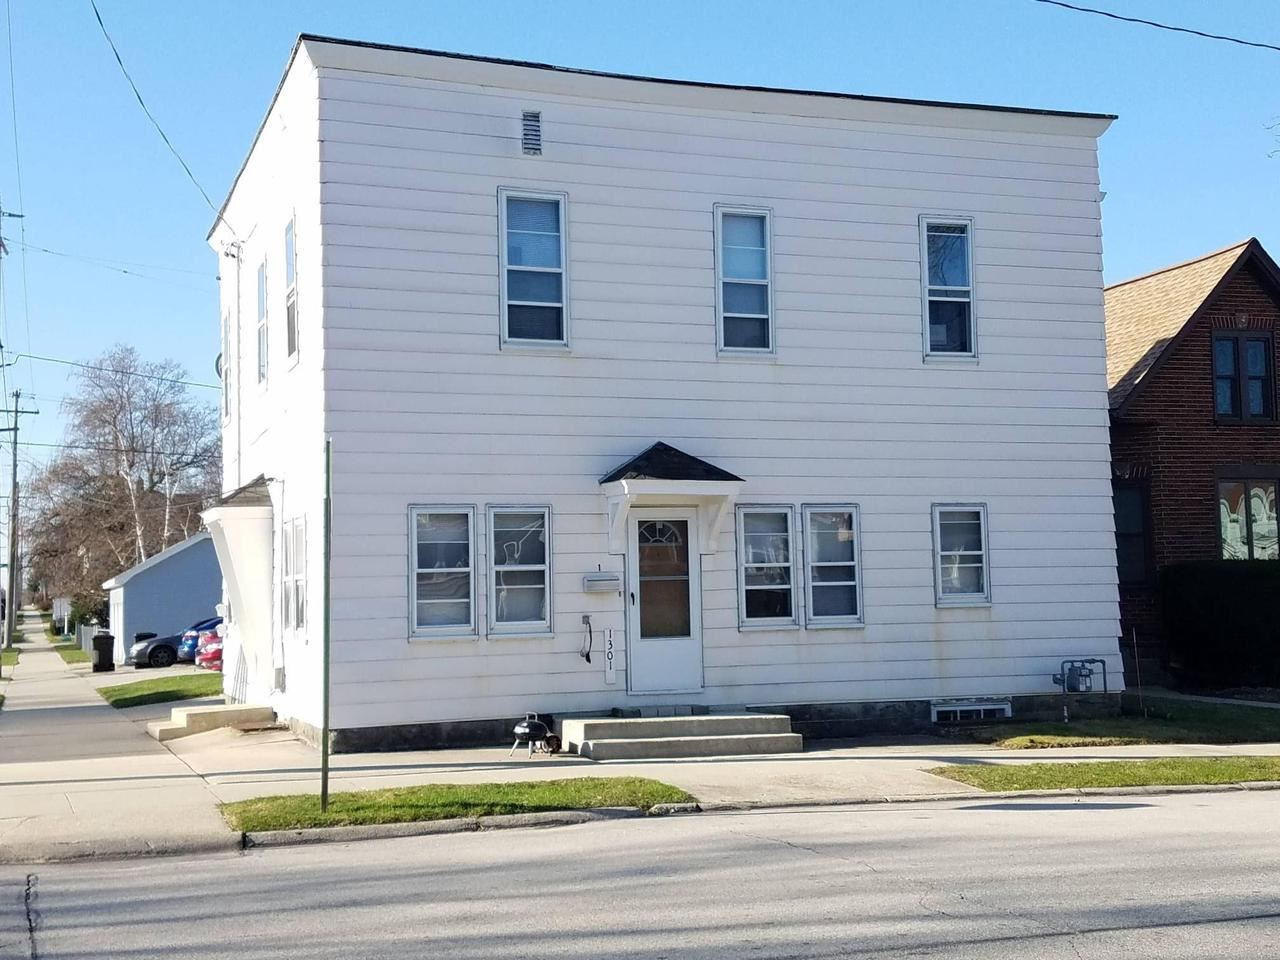 1301 Madison Ave, South Milwaukee, WI 53172 - MLS#: 1684336